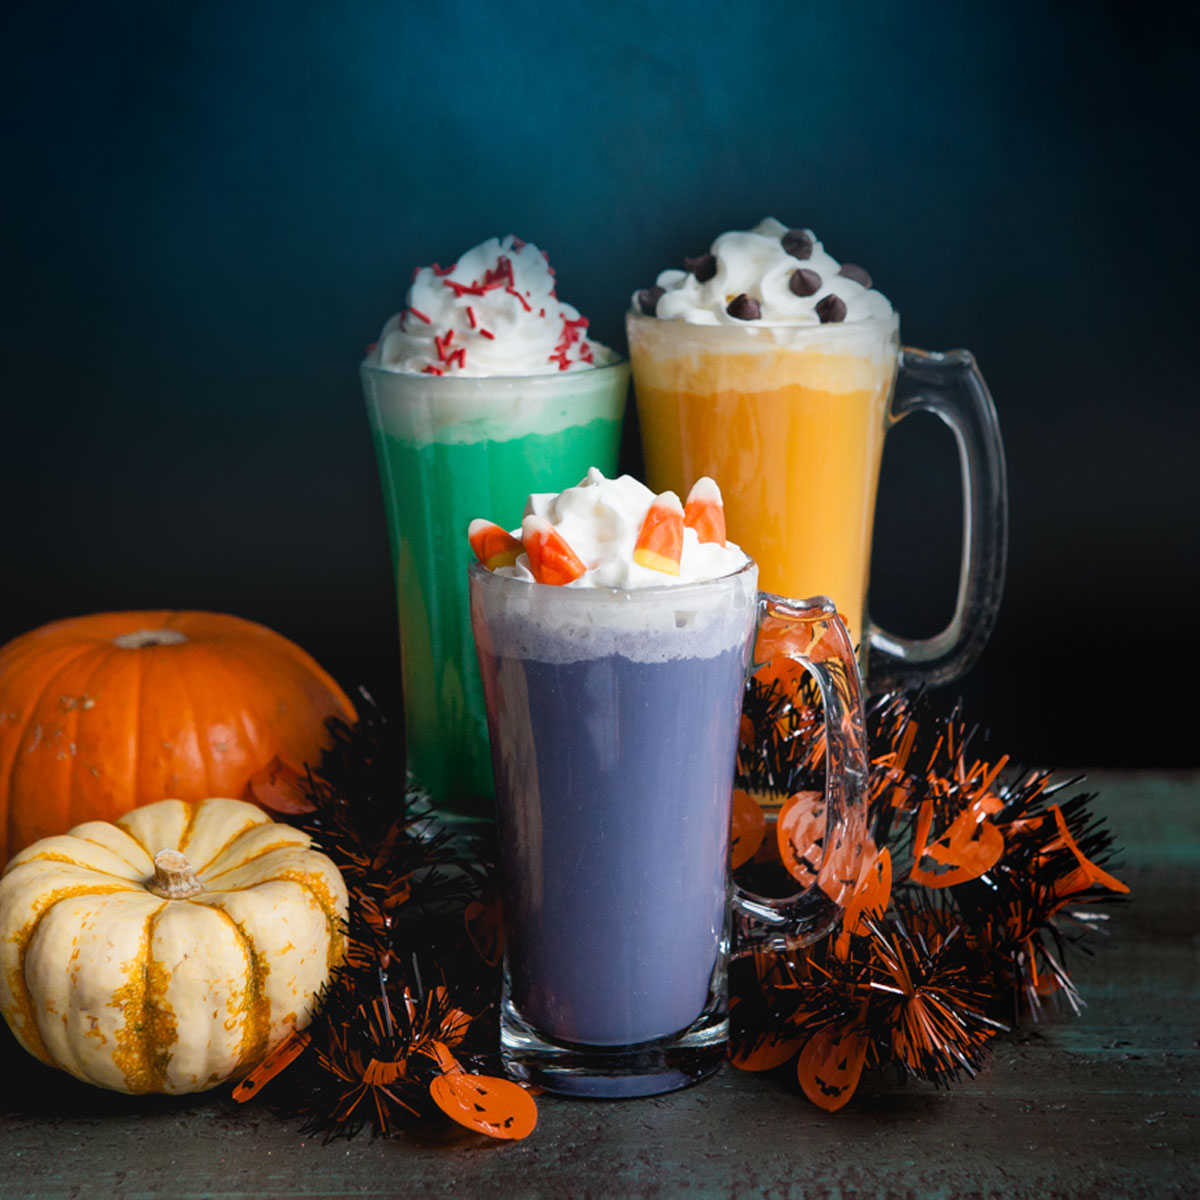 Three colorful drinks with Halloween candy and whipped cream on top surrounded by spooky decorations